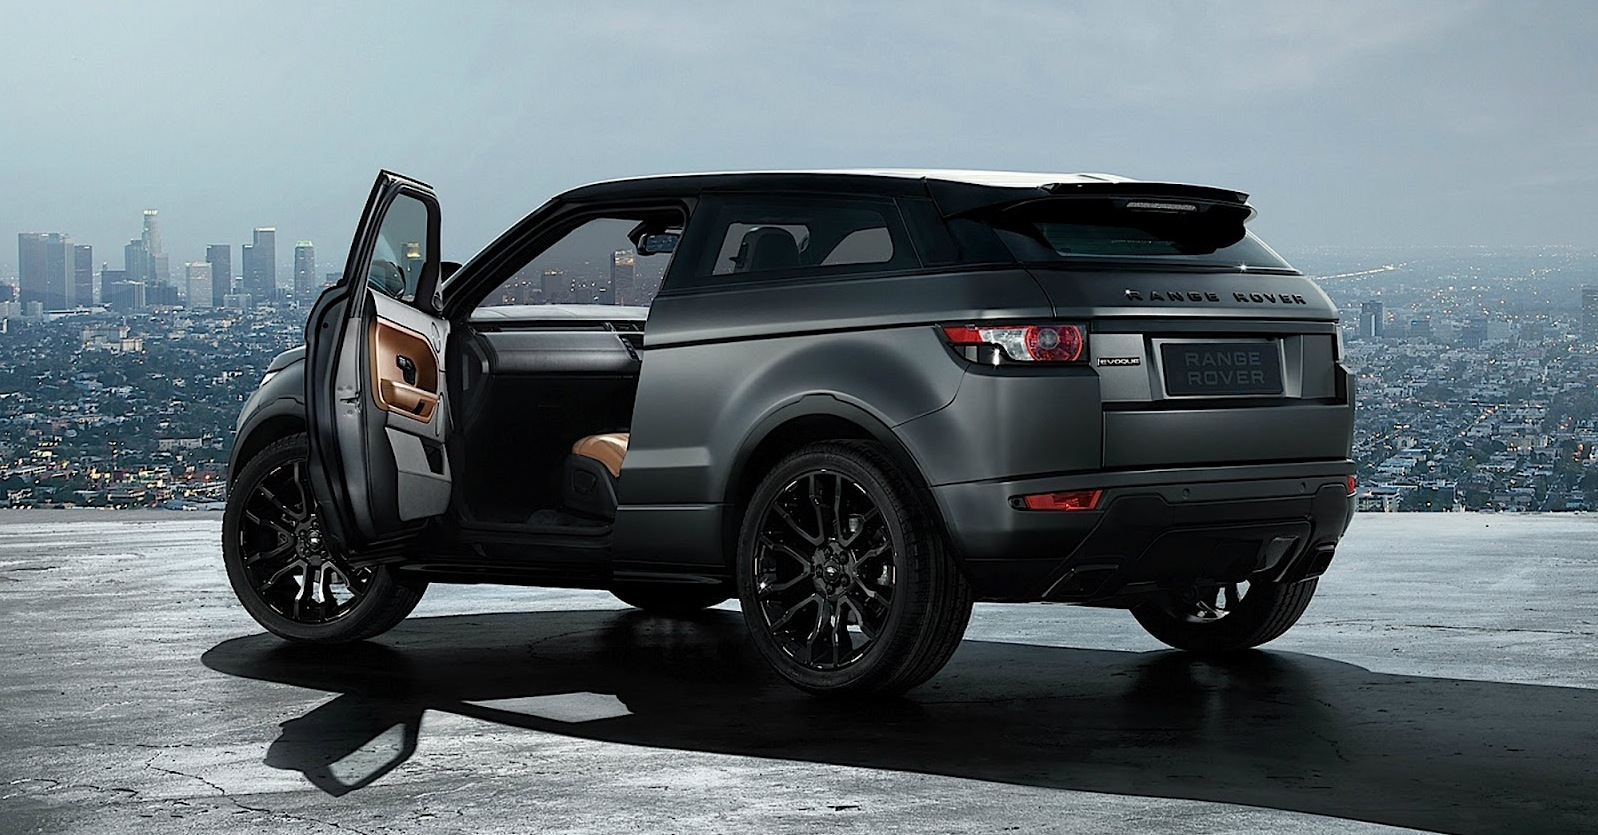 Land Rover Range Rover Evoque Victoria Beckham Special Limited Edition Free Download Image